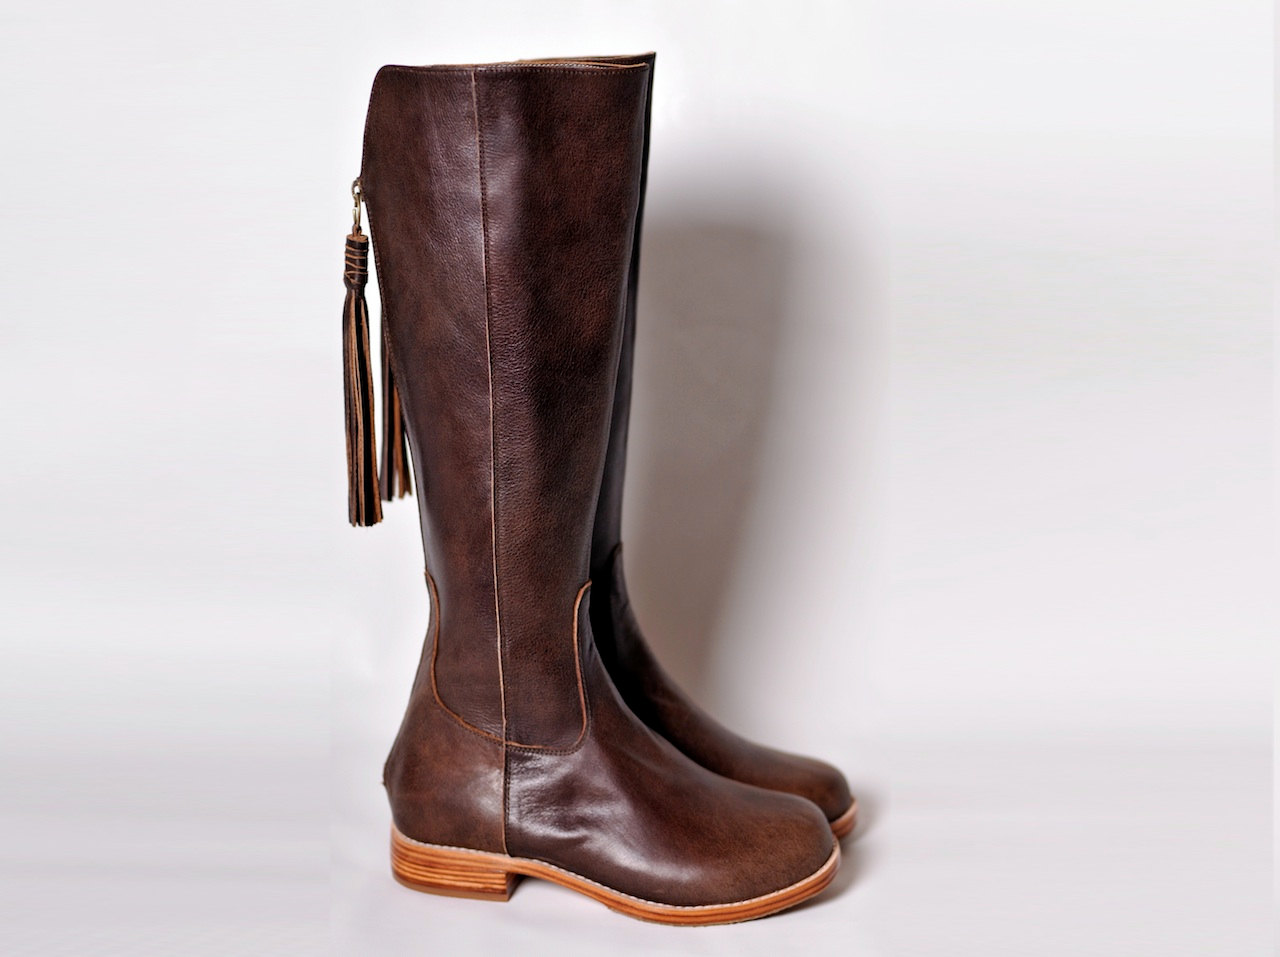 Leather Boots Womens hiZ6UANr